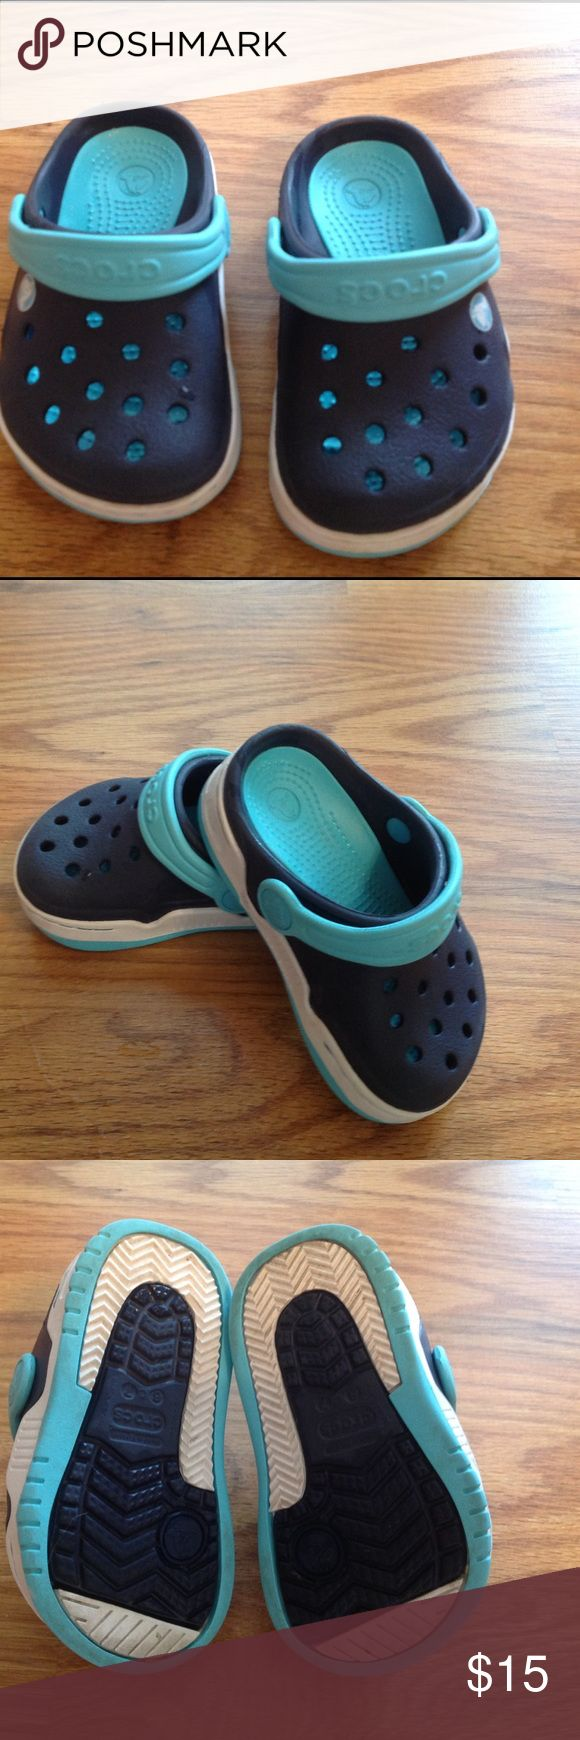 Toddler boy crocs Toddler boy crocs CROCS Shoes Sandals & Flip Flops